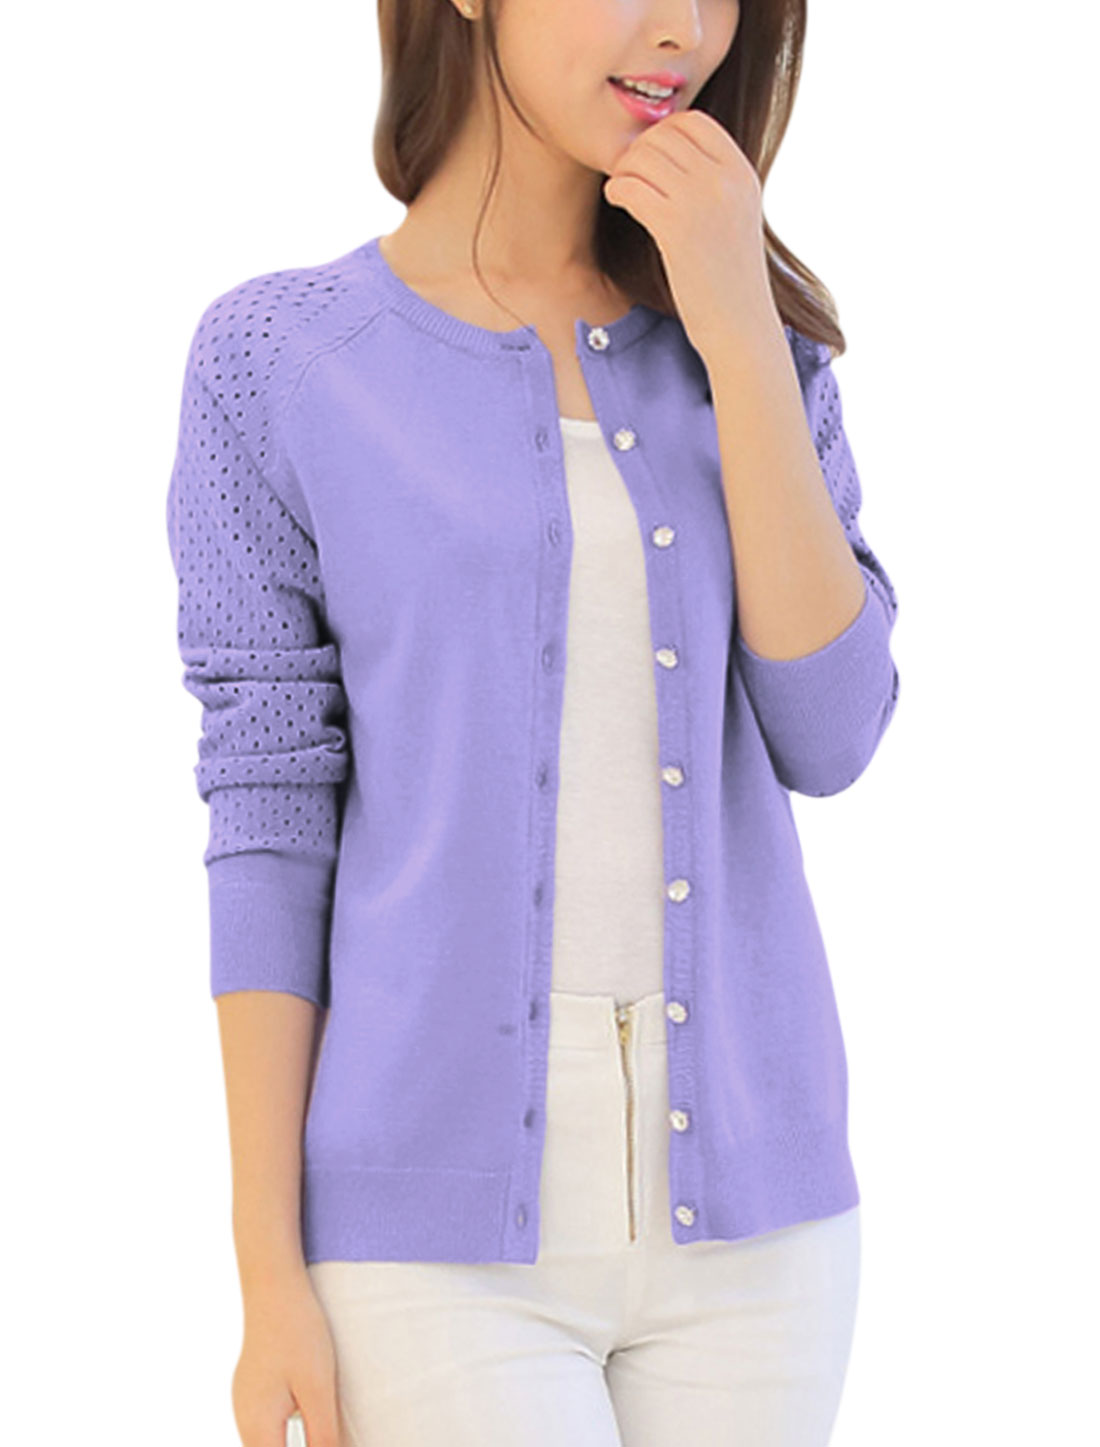 Lady Raglan Sleeve Single Breasted Hollow Out Casual Knit Cardigan Lavender XS